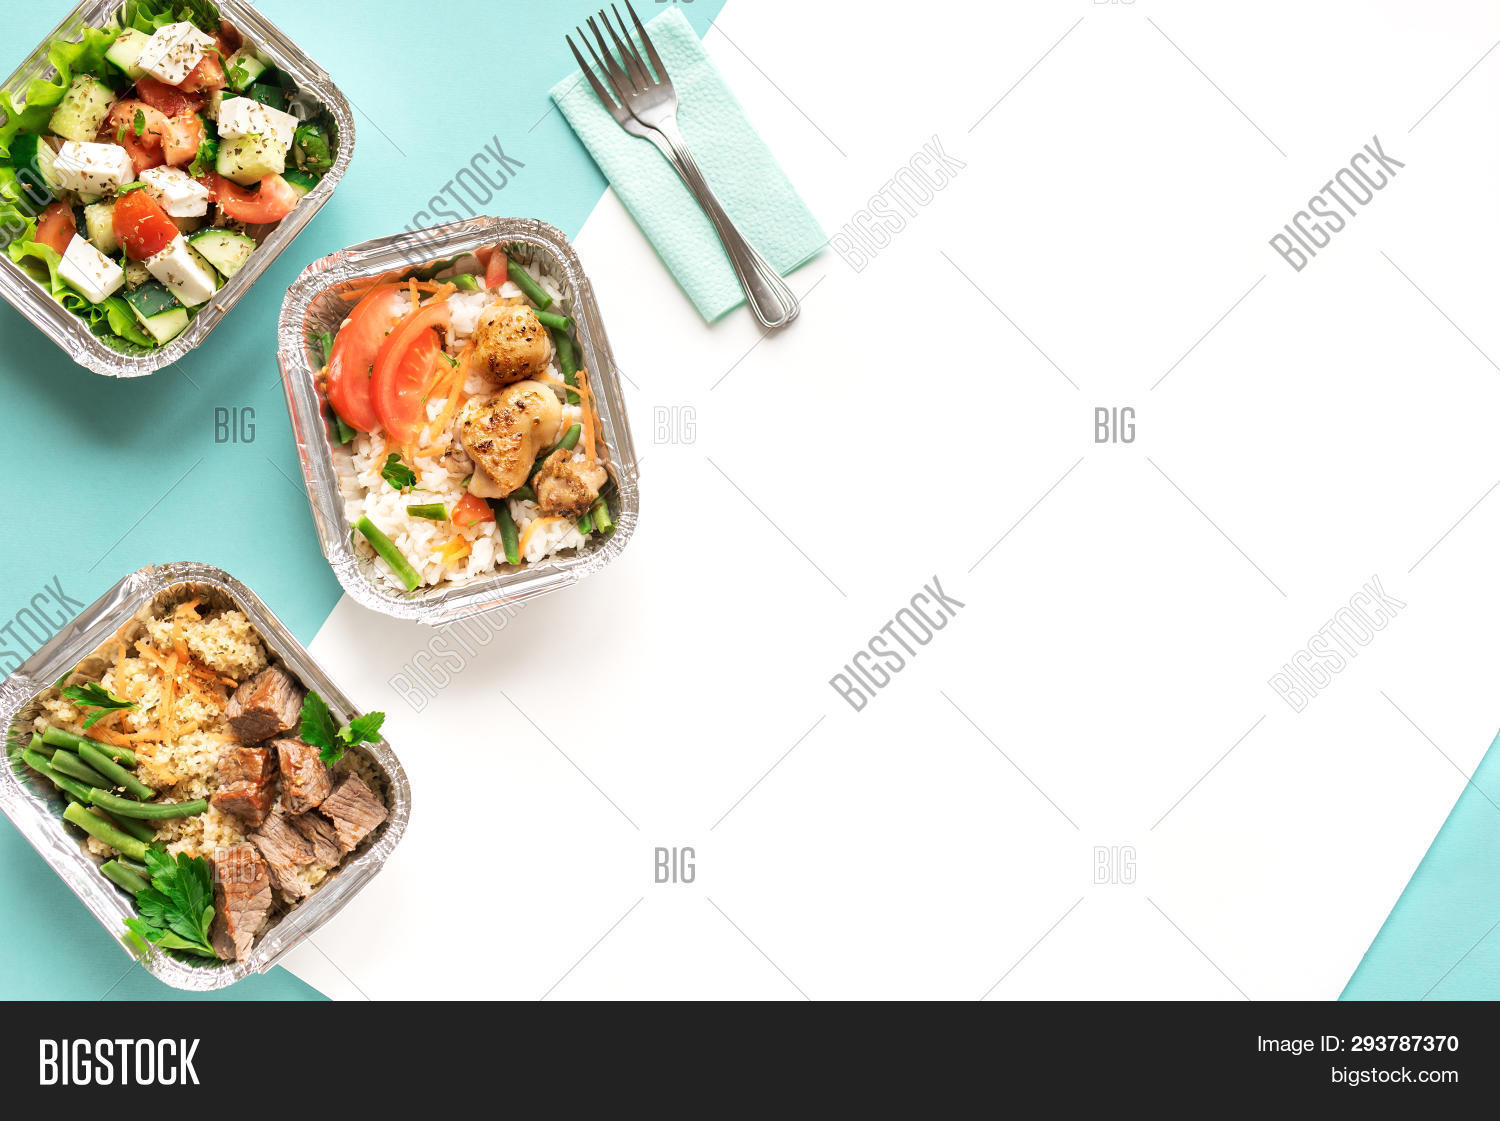 assortment,away,background,beef,blue,box,boxes,carb,clean,concept,container,copy,cuisine,daily,delicious,delivery,diet,dieting,dinner,dish,eating,fitness,flat,foil,food,fork,fresh,healthy,lay,lifestyle,loss,low,lunch,meal,meat,nutrition,online,order,organic,restaurant,salad,space,take,top,various,vegetable,view,weight,white,wood